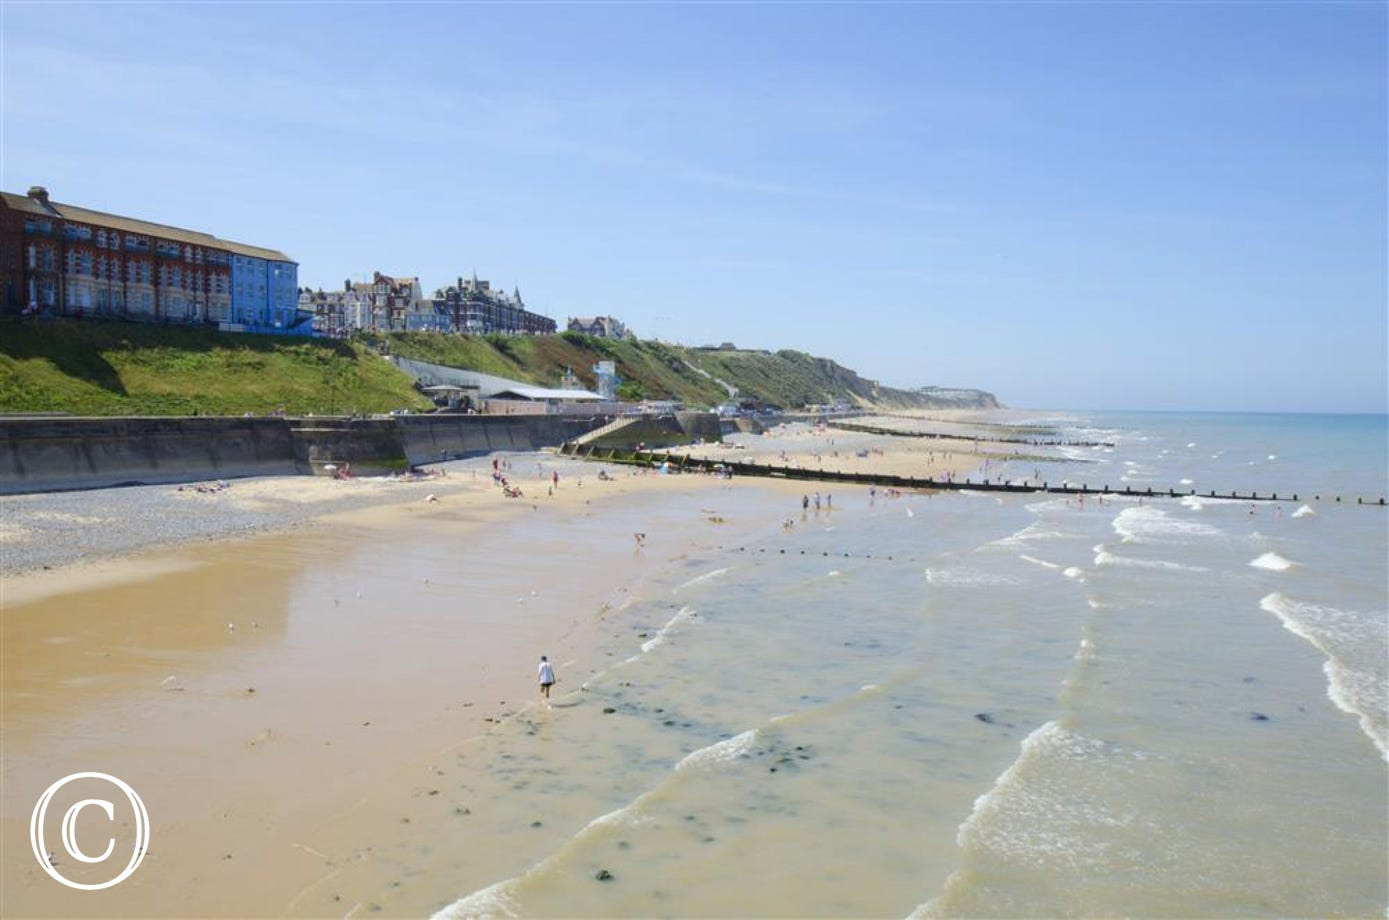 Another lovely shot of Cromer